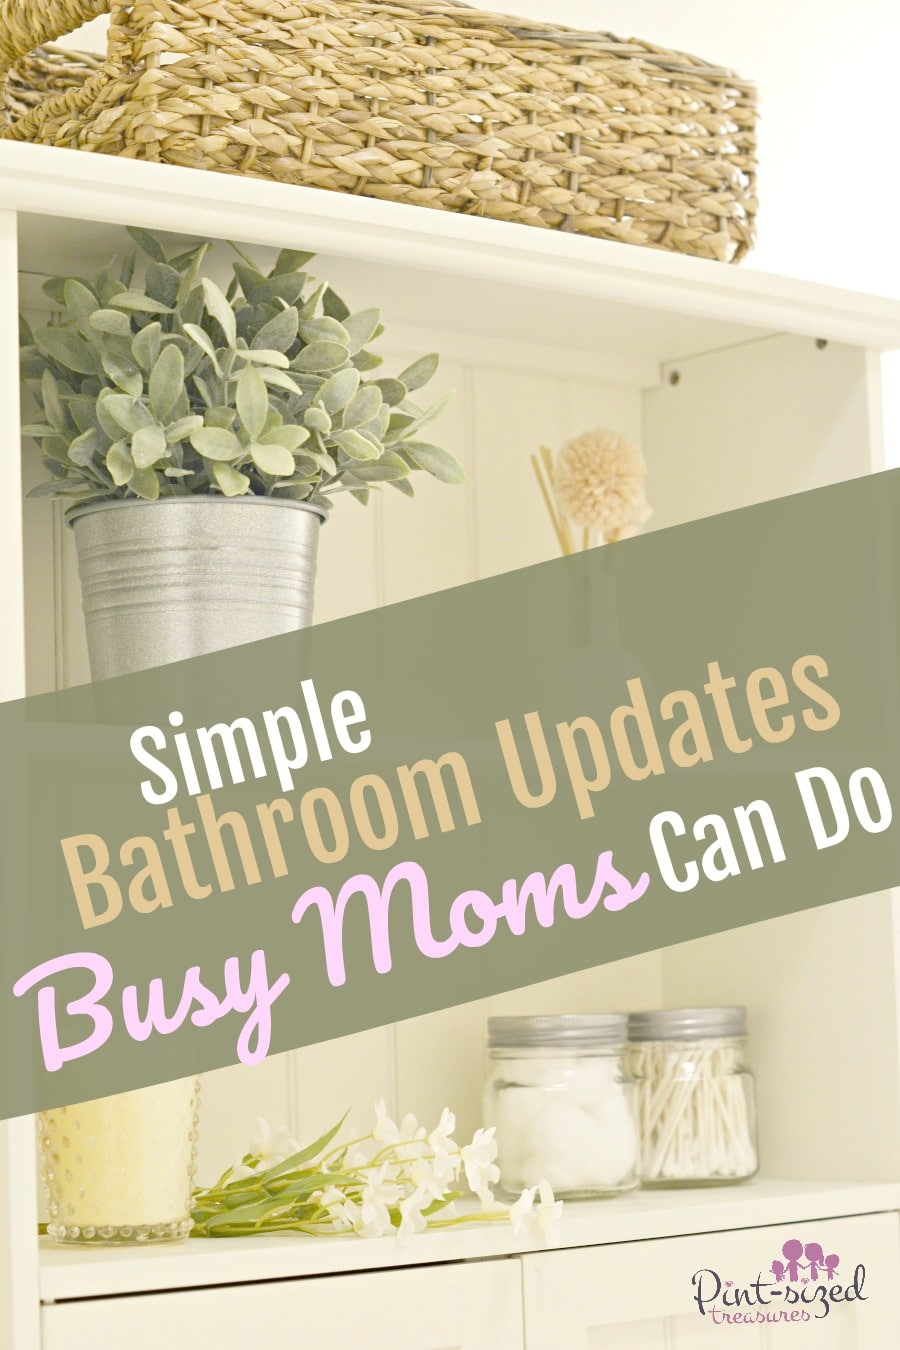 simple bathroom updates moms can do